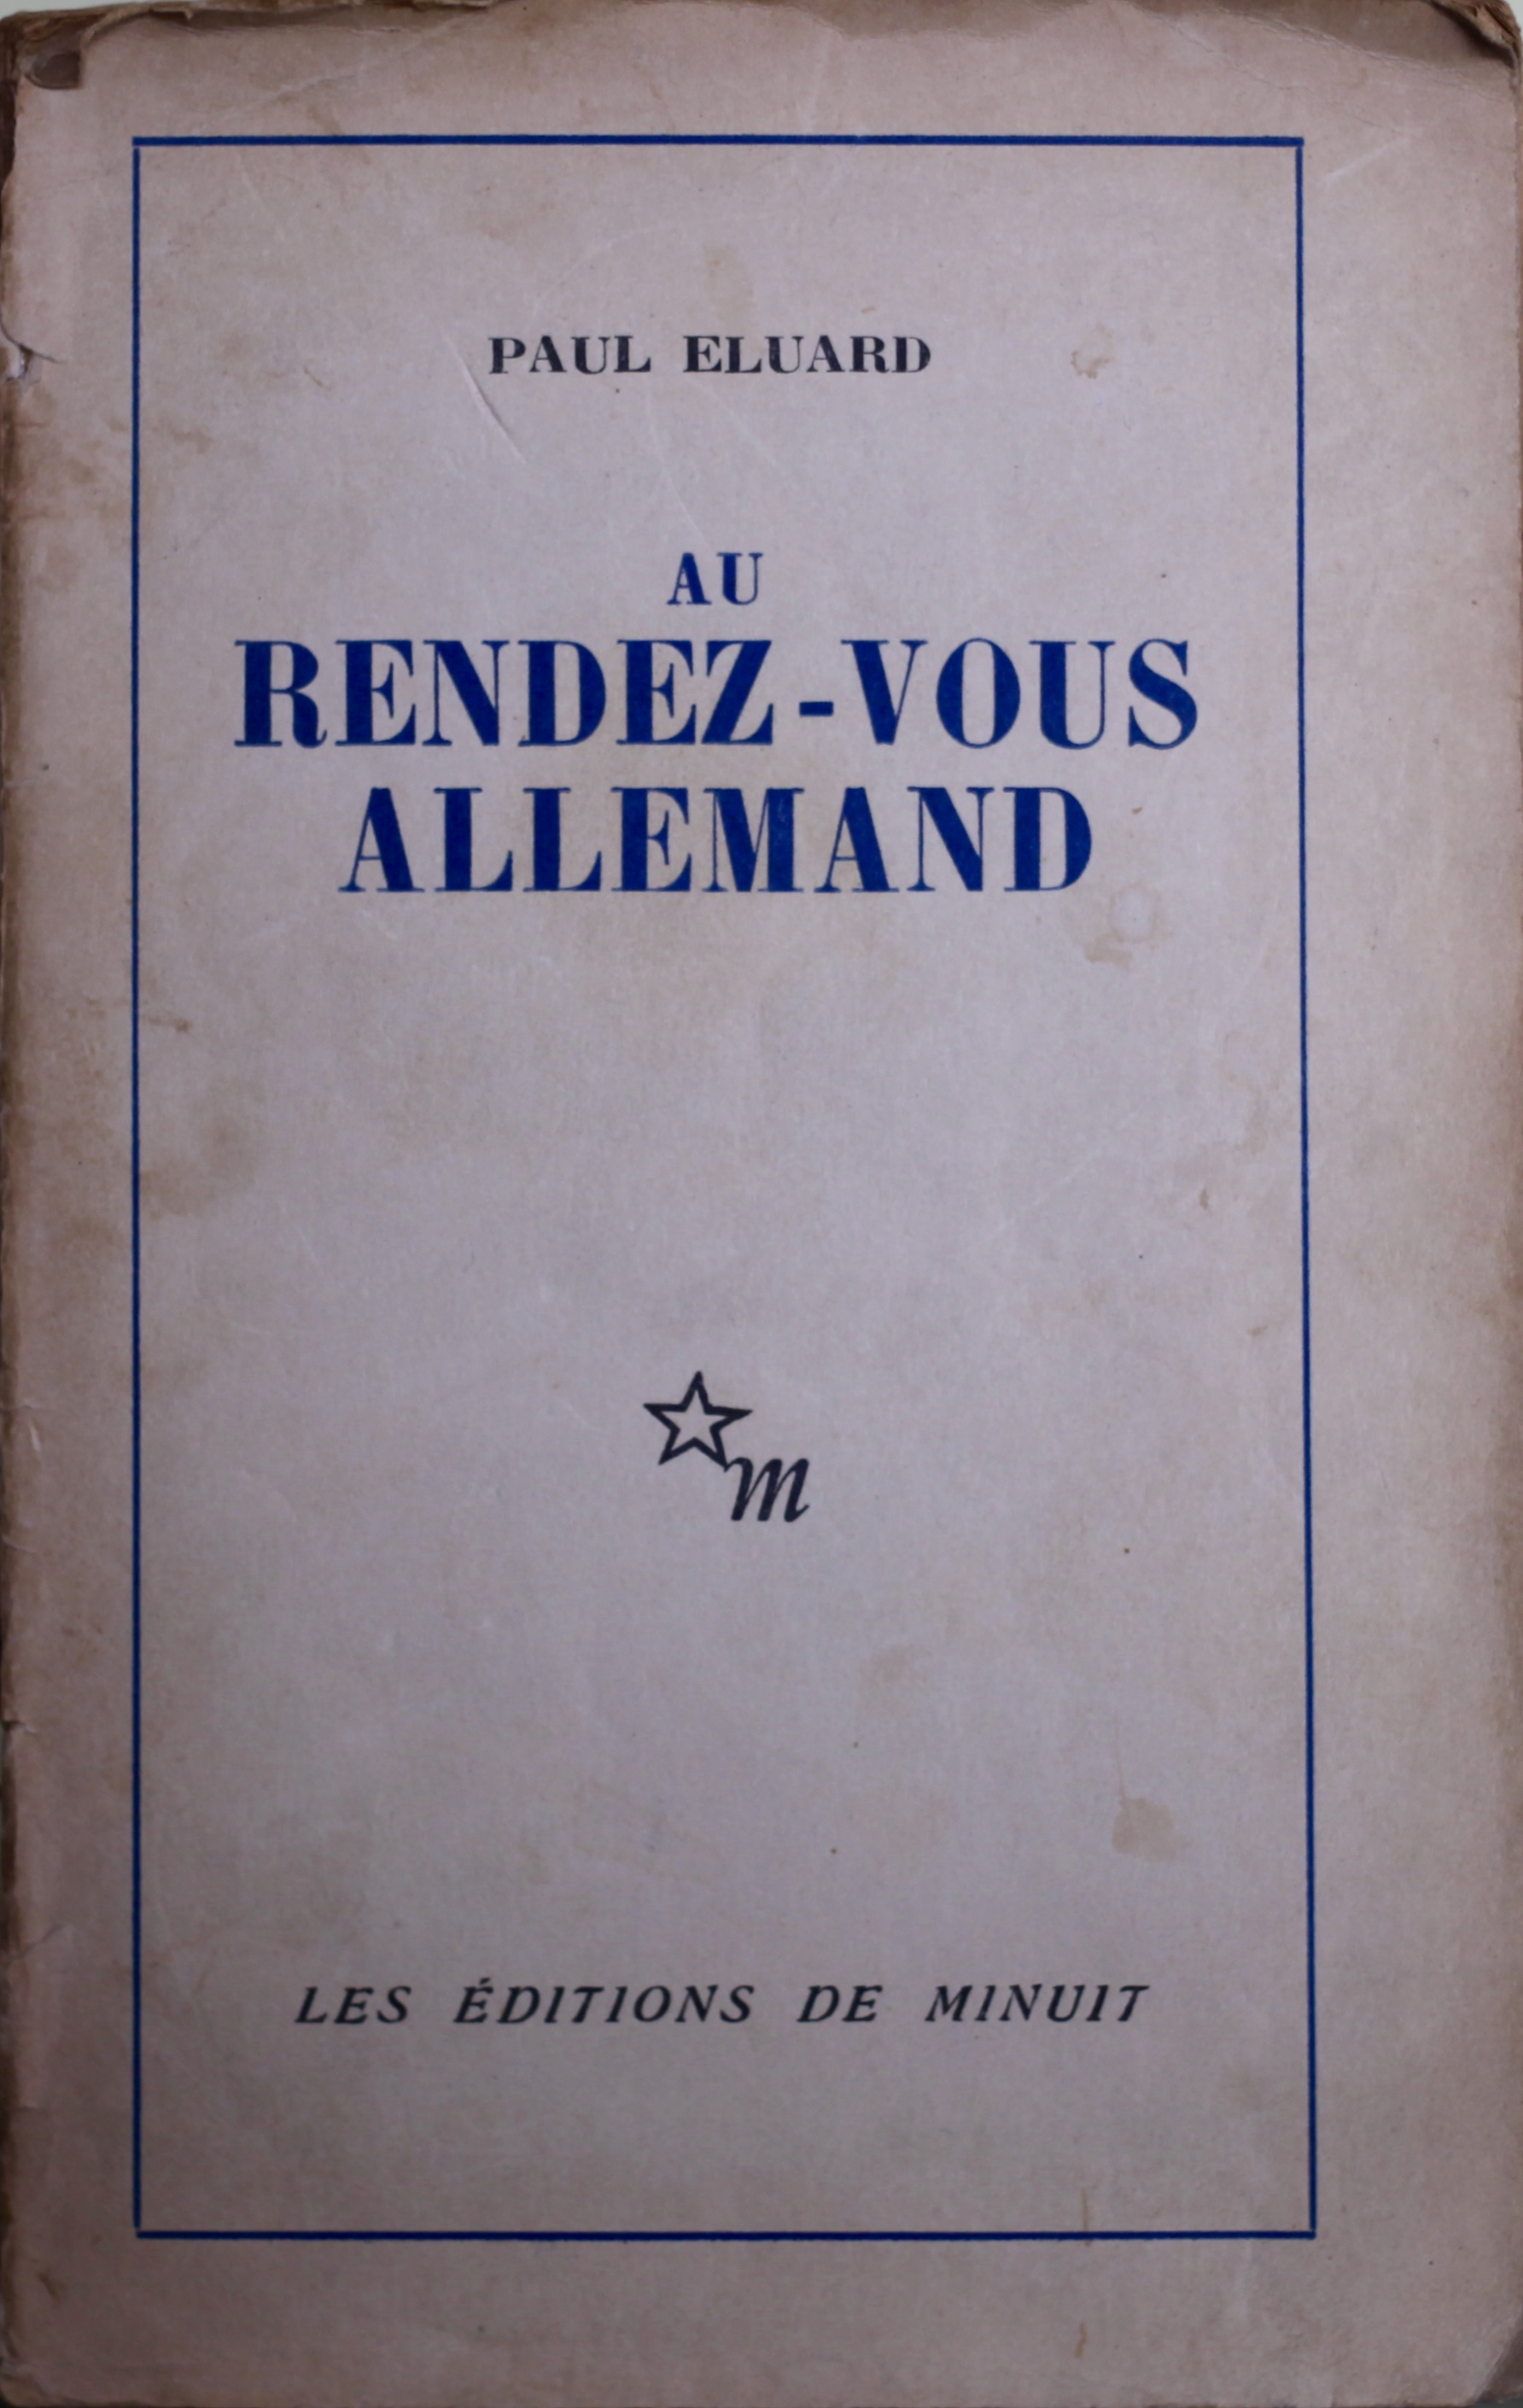 The copy of Éluard's poetry I bought in Pully